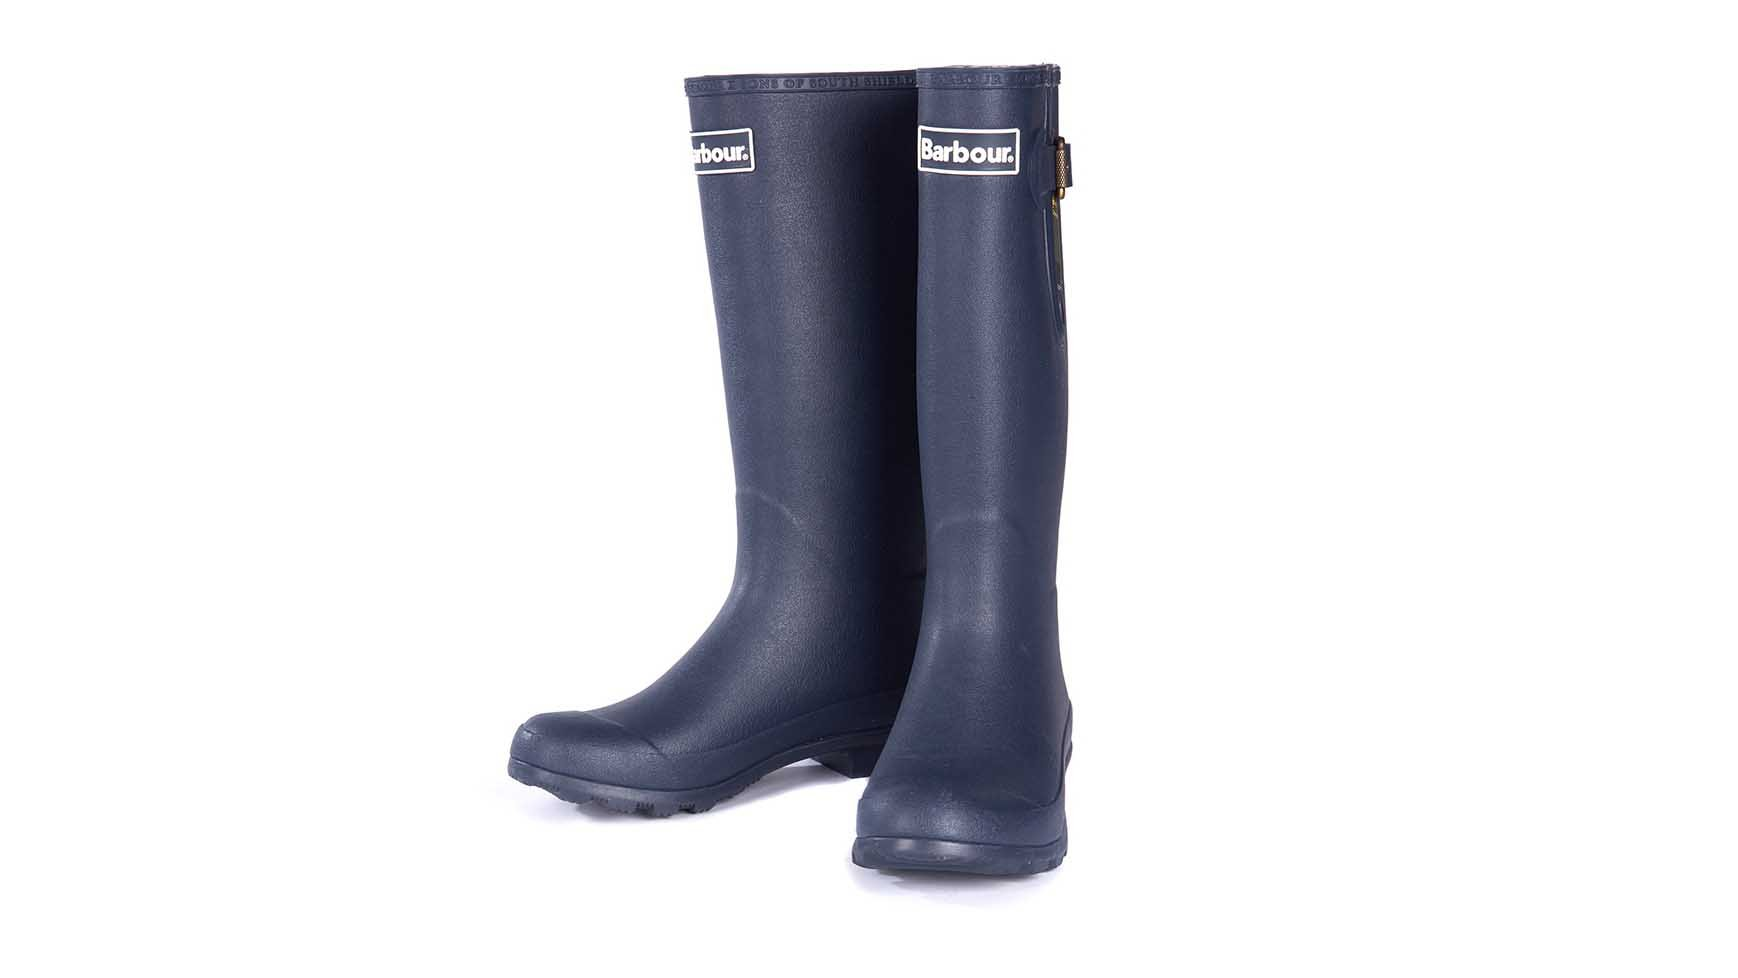 1bada2a859c Best wellington boots: The best wellies for men and women from £22 ...